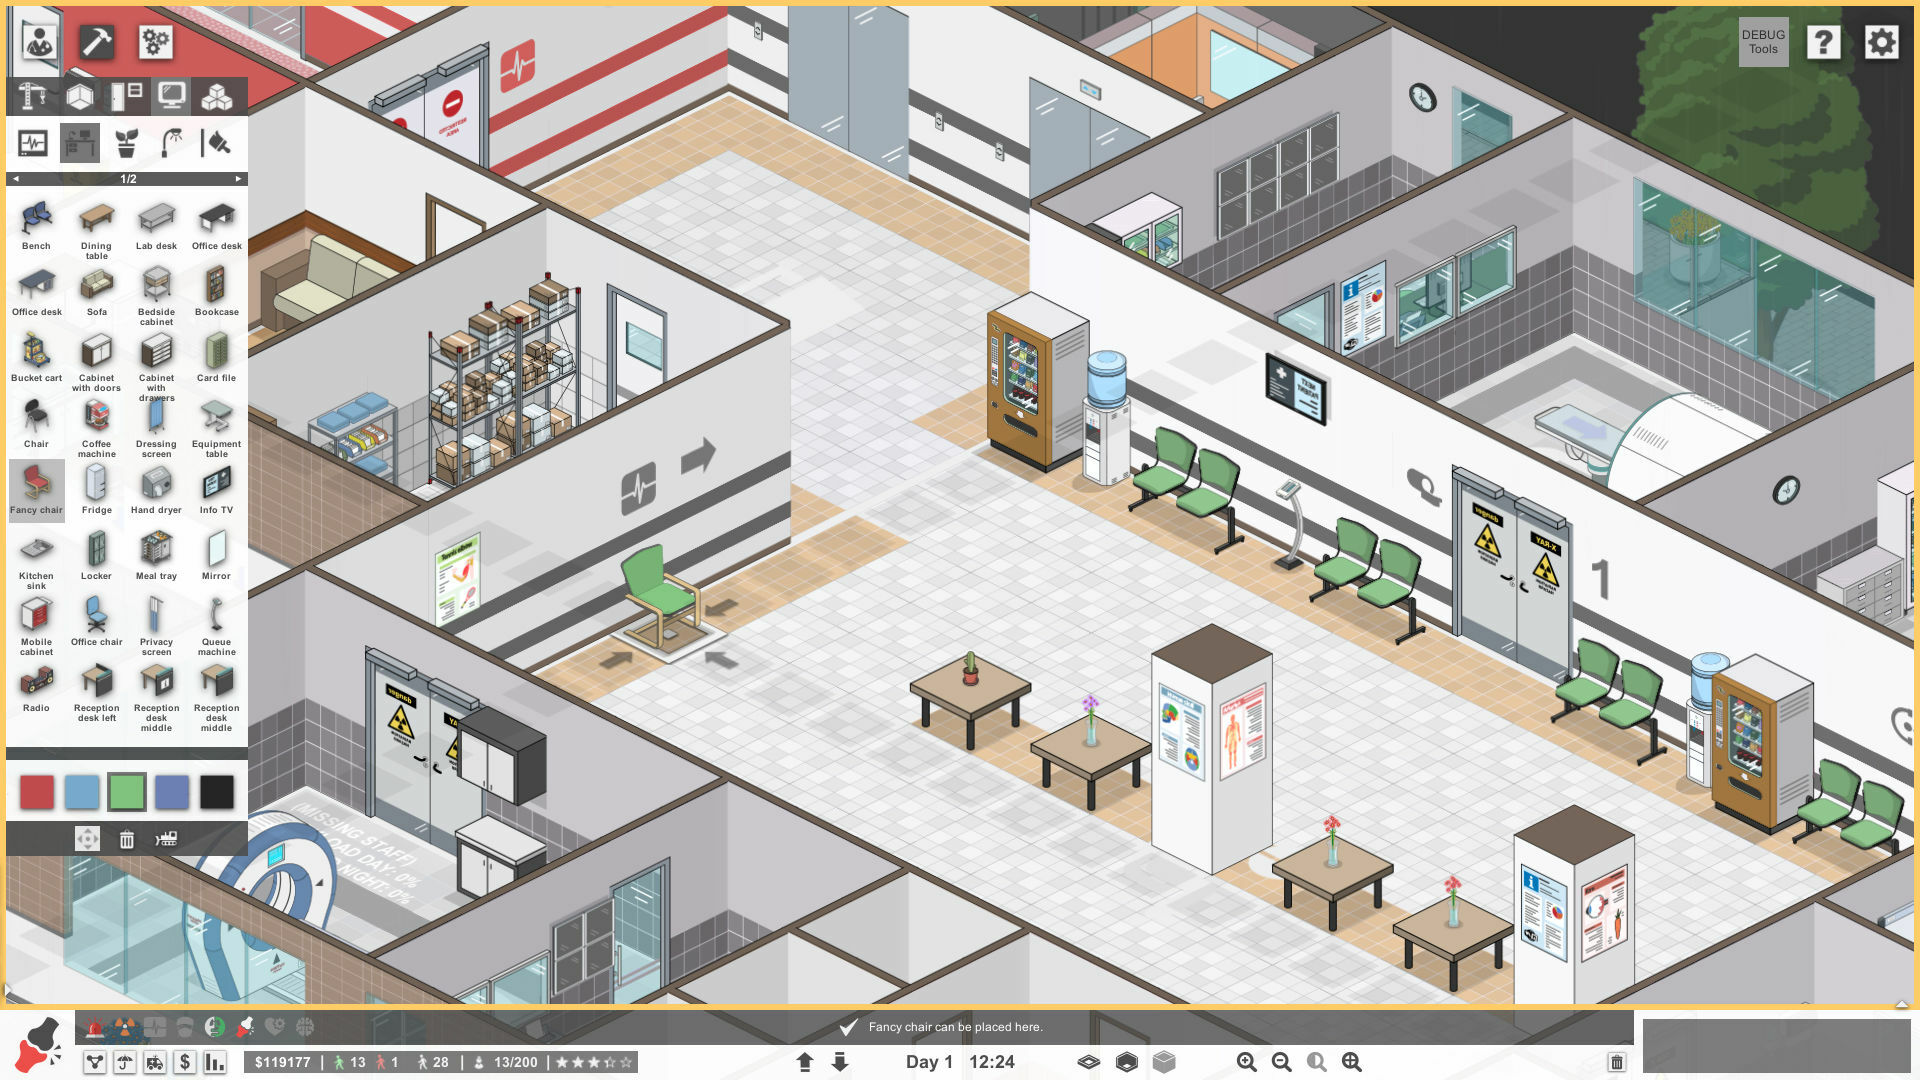 Project Hospital screenshot 3